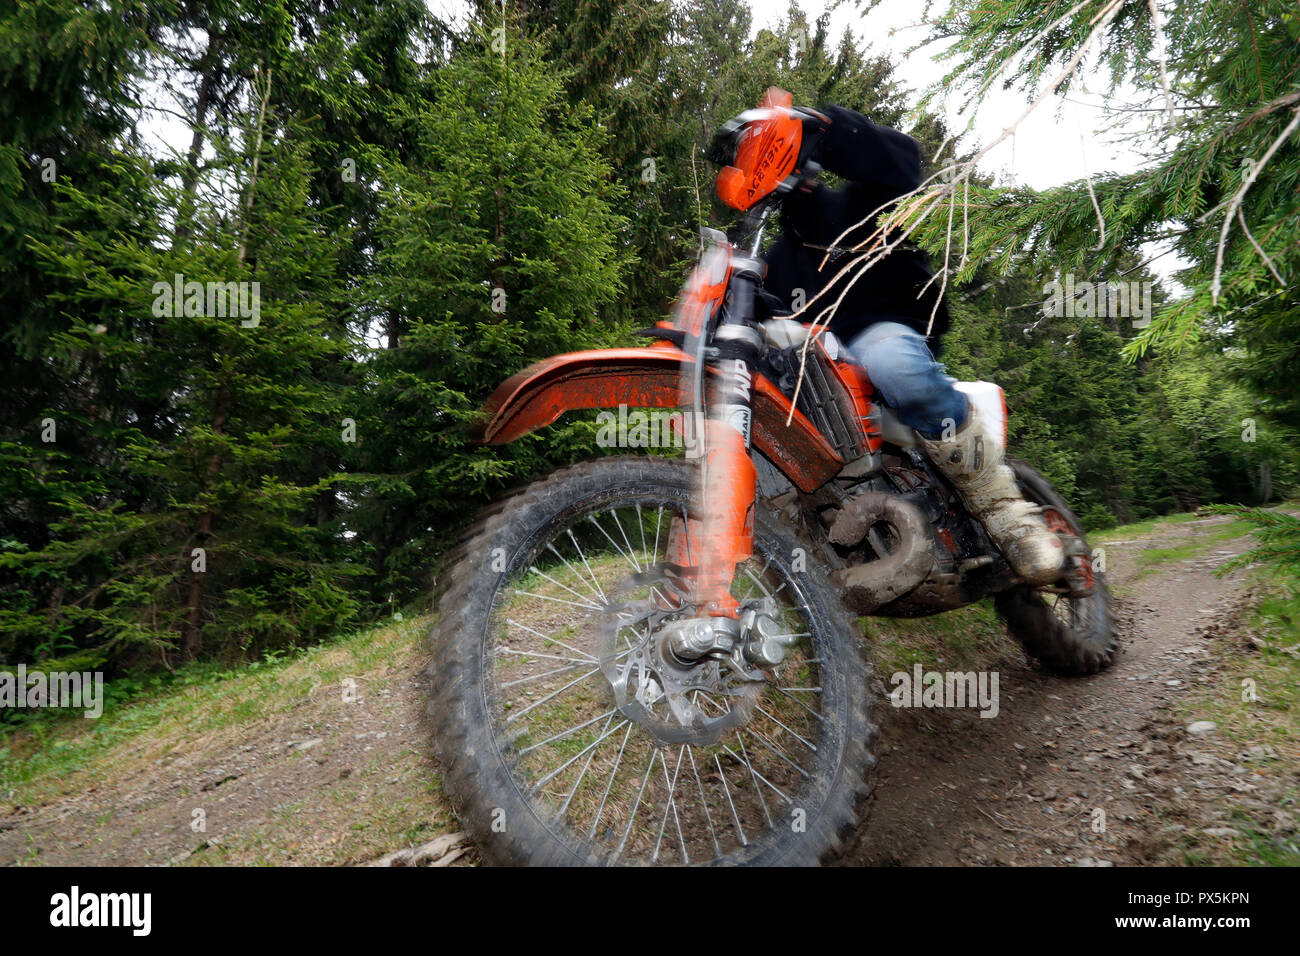 Motocross driver riding in the french Alps.  France. - Stock Image